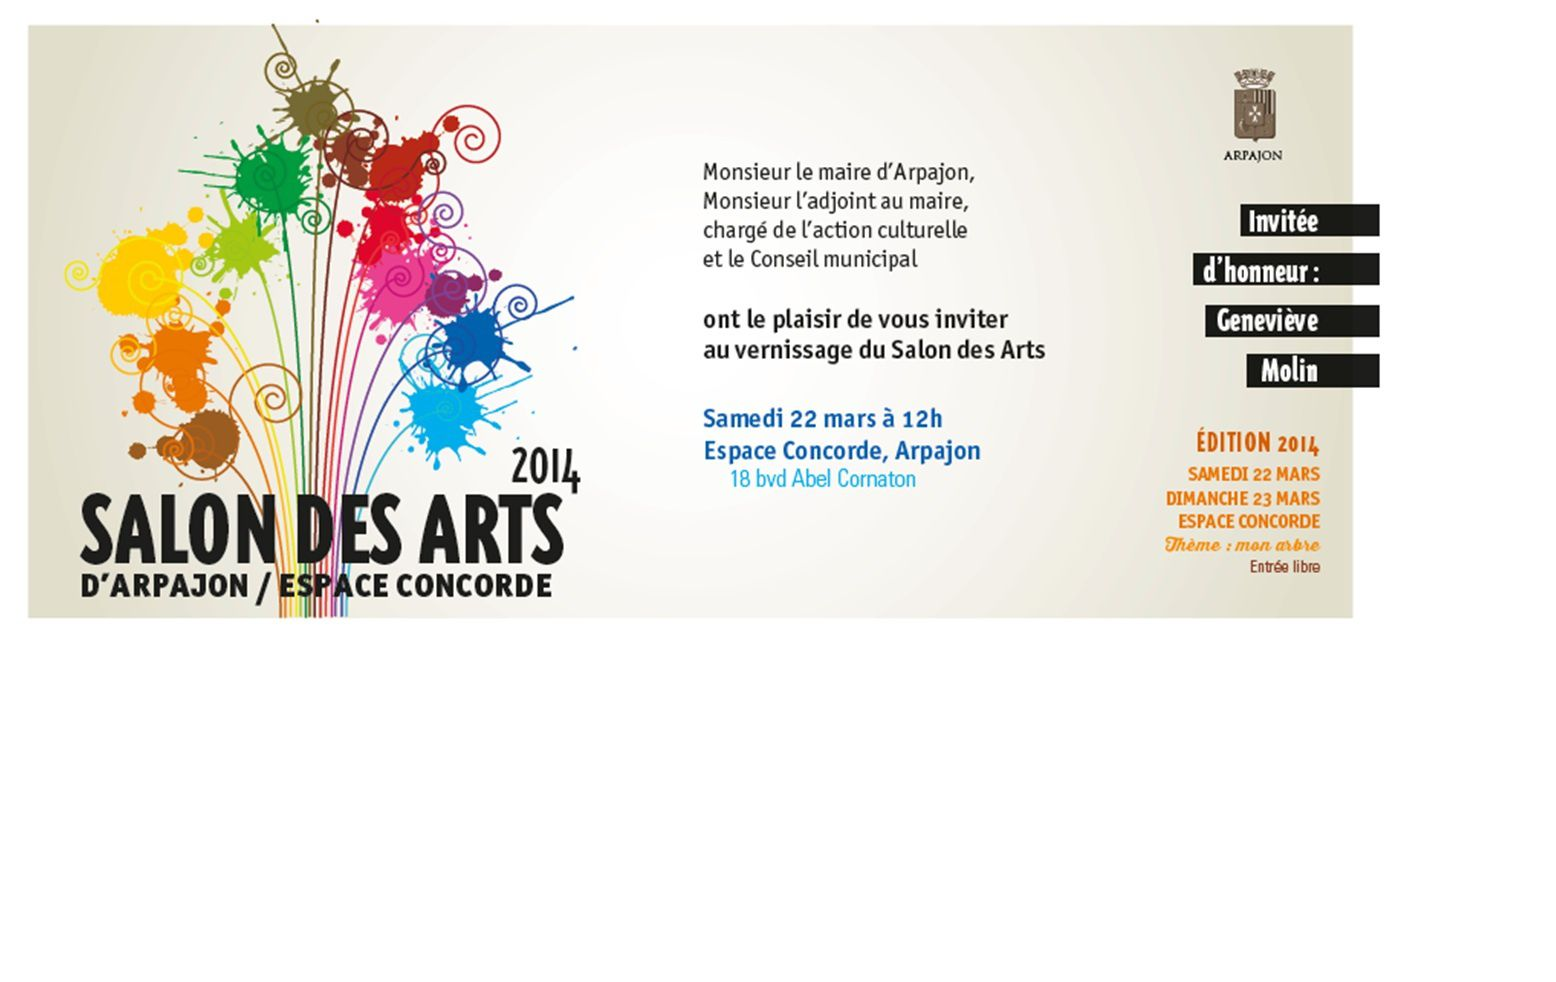 Salon des arts d'Arpajon 2014